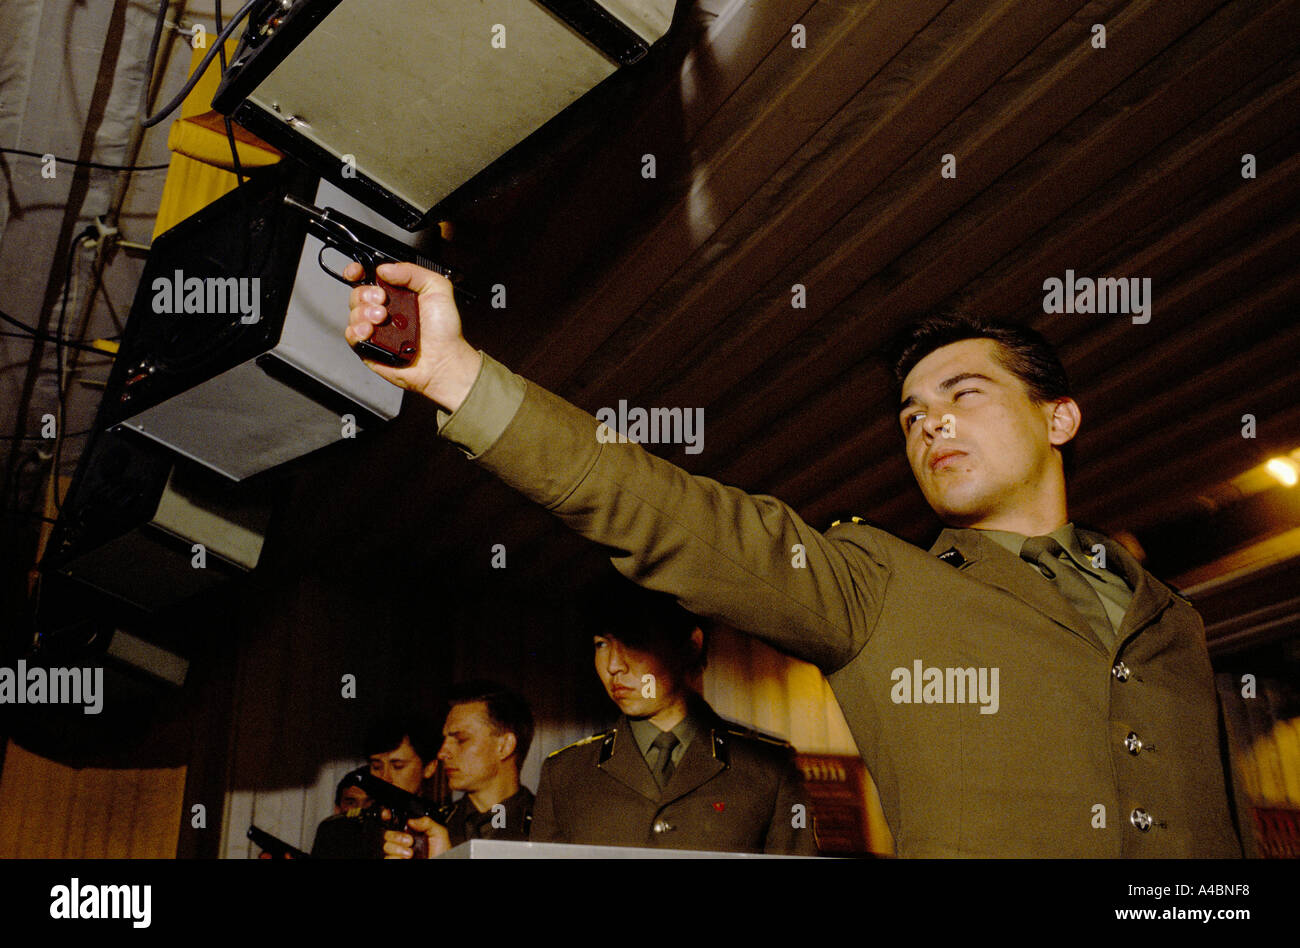 Target practice in the KGB's training school, Moscow, Russia, USSR, using the KGB's standard 9mm hand gun 1990 - Stock Image